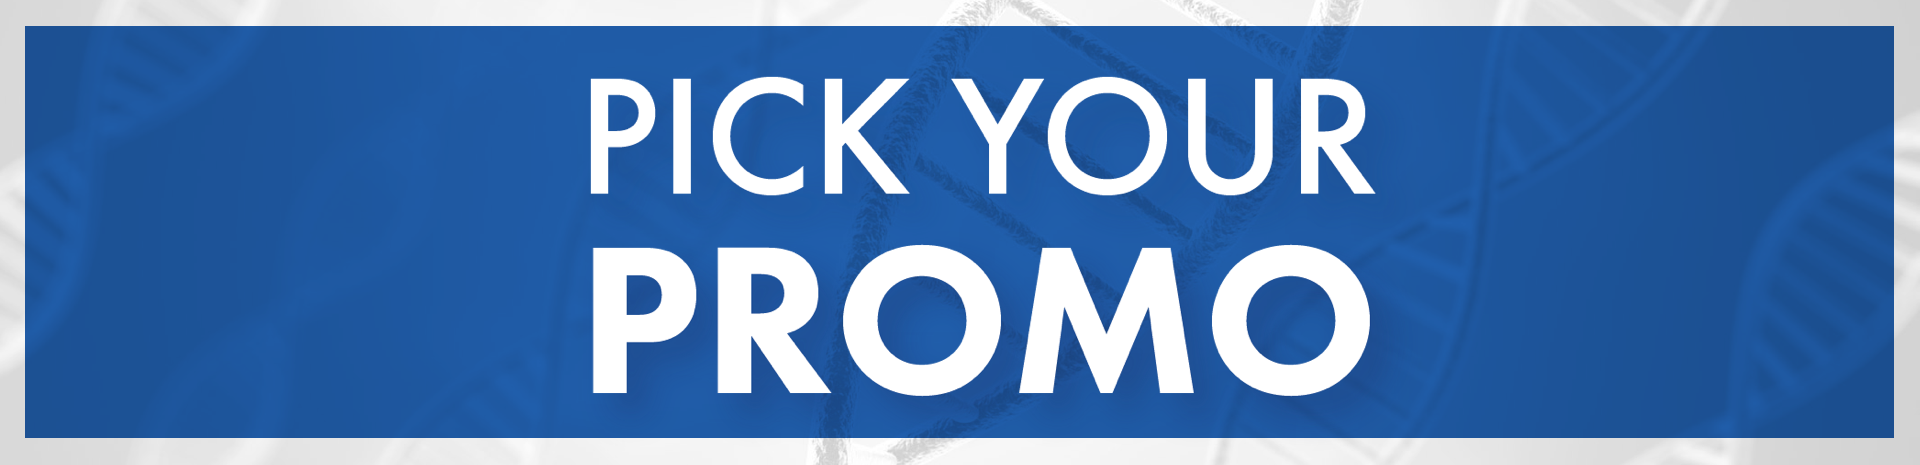 PIck_Your_Promo_LP_Banner3